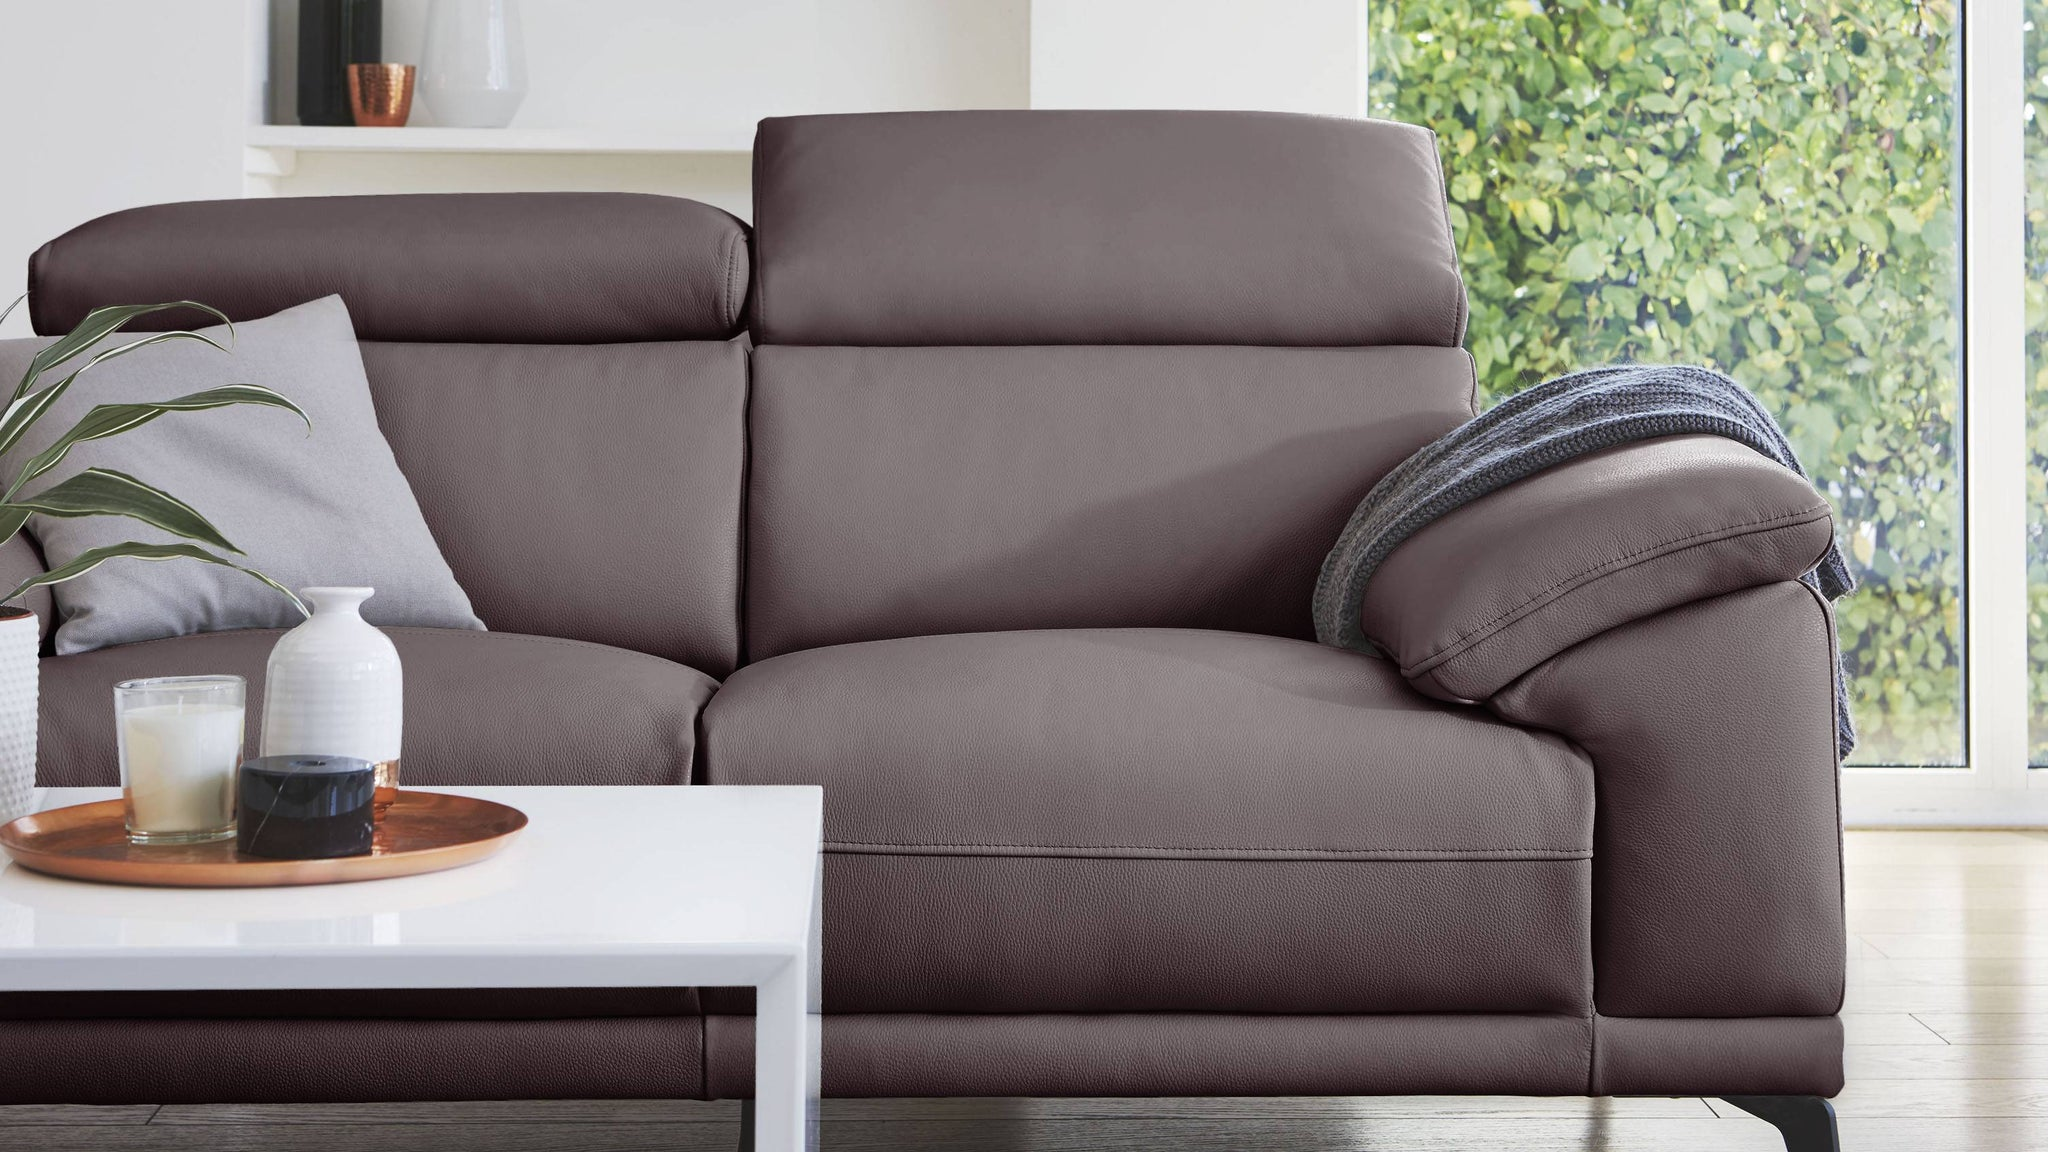 Siena 3 Seater Leather Sofa